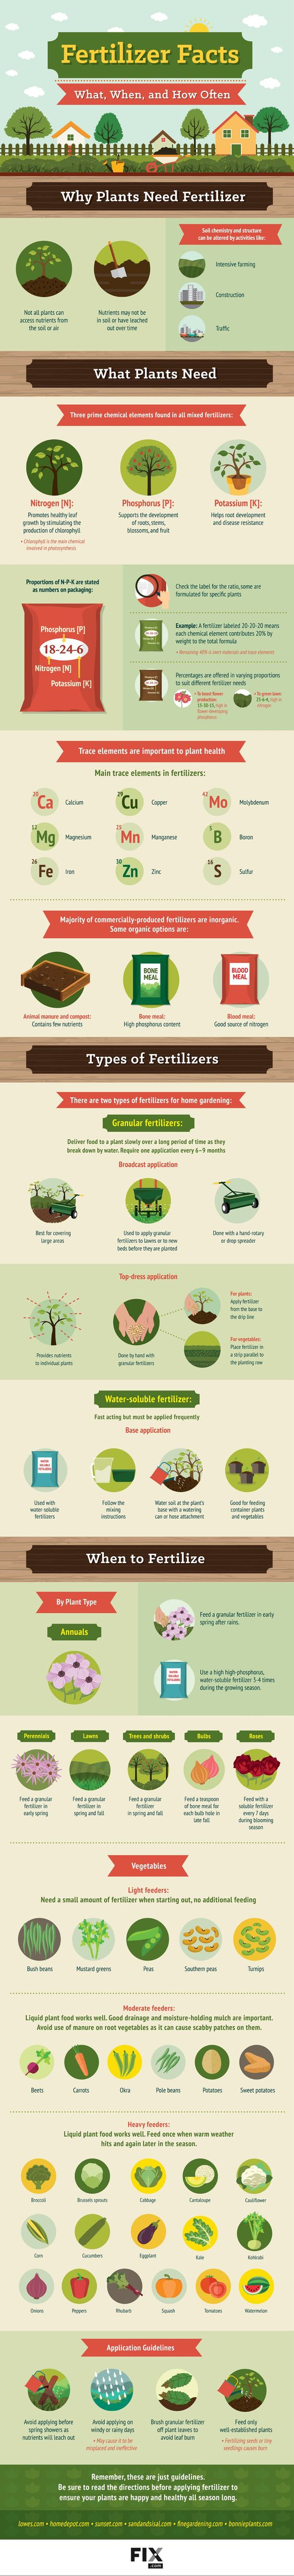 Fertilizer Facts What, When, and How Often #infographic #Gardening